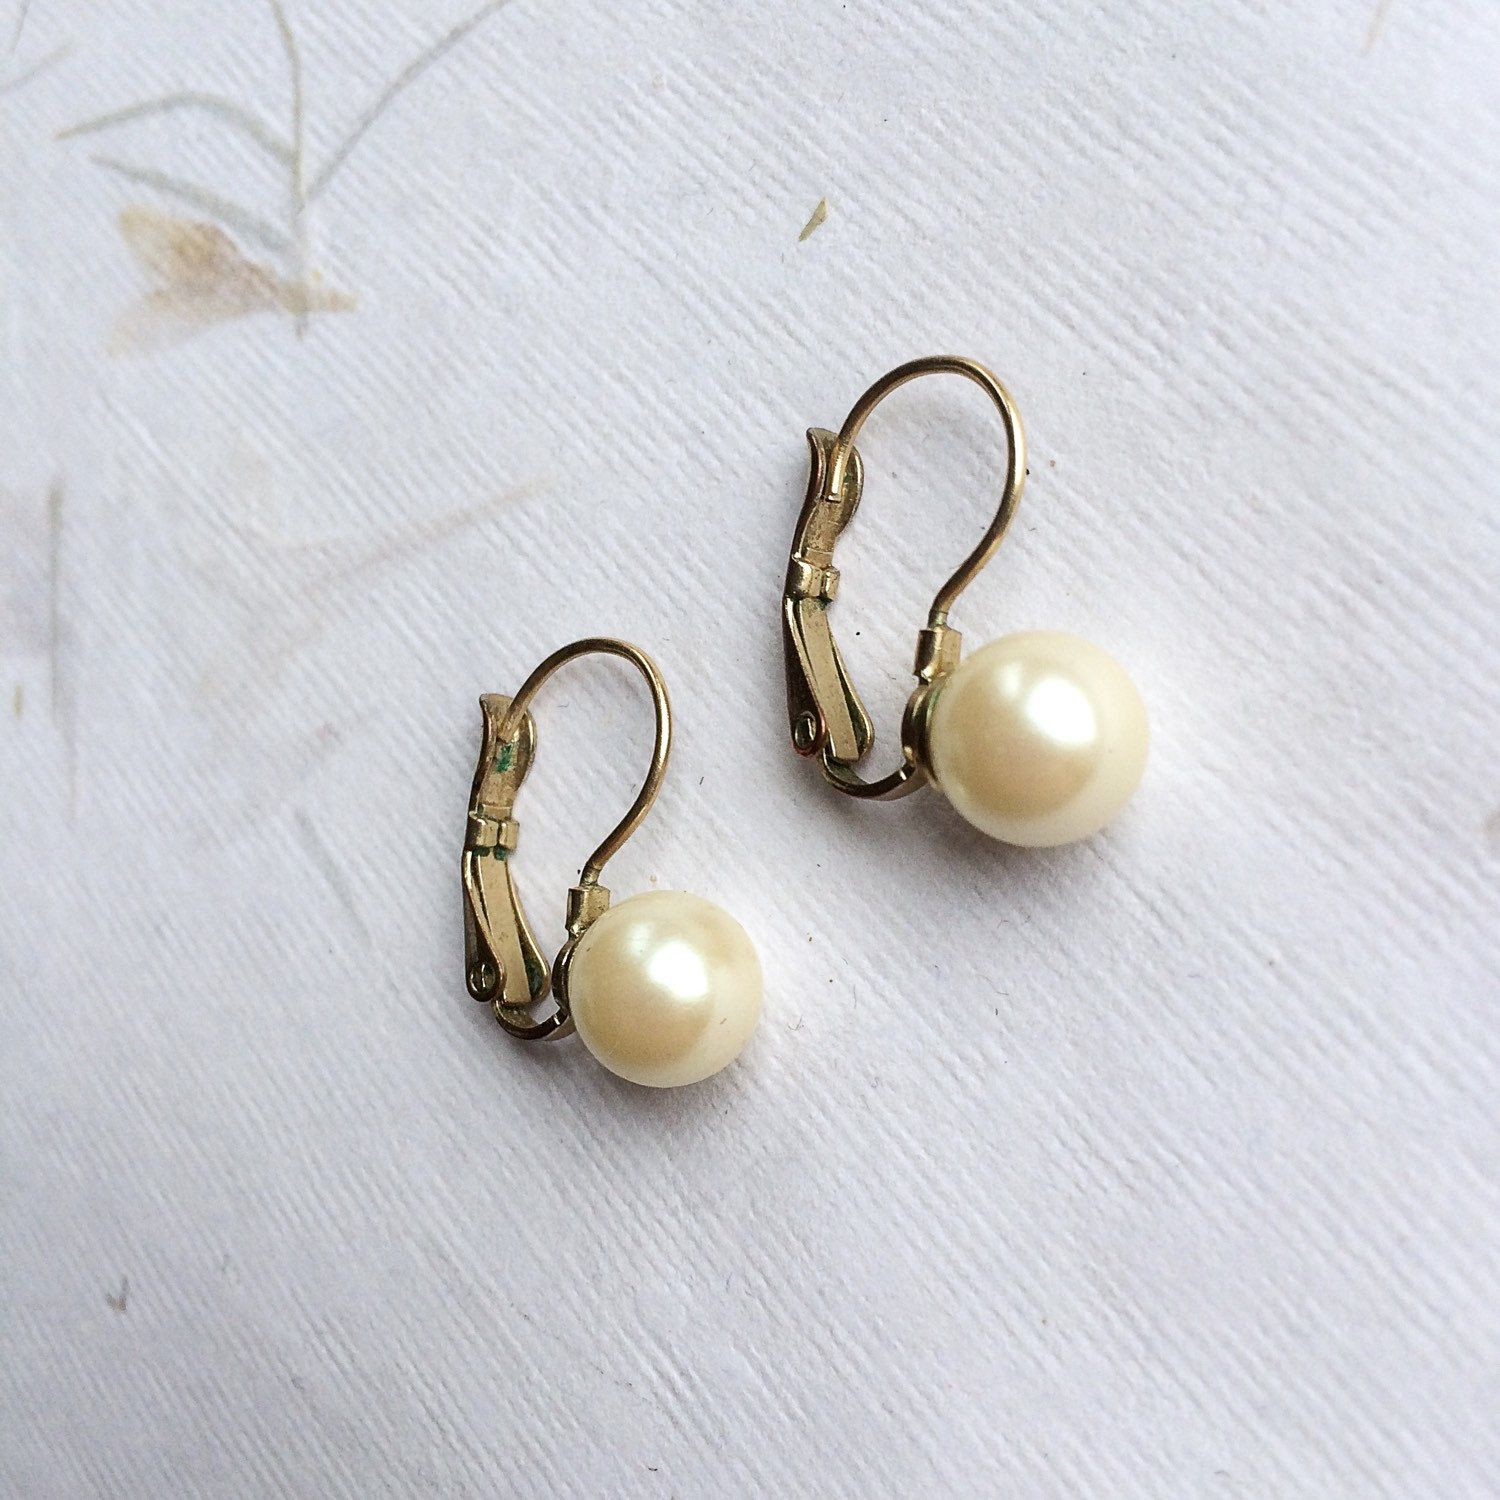 metallic earrings pearl gold darcey earring jewelry chloe faux lyst single s in women chlo